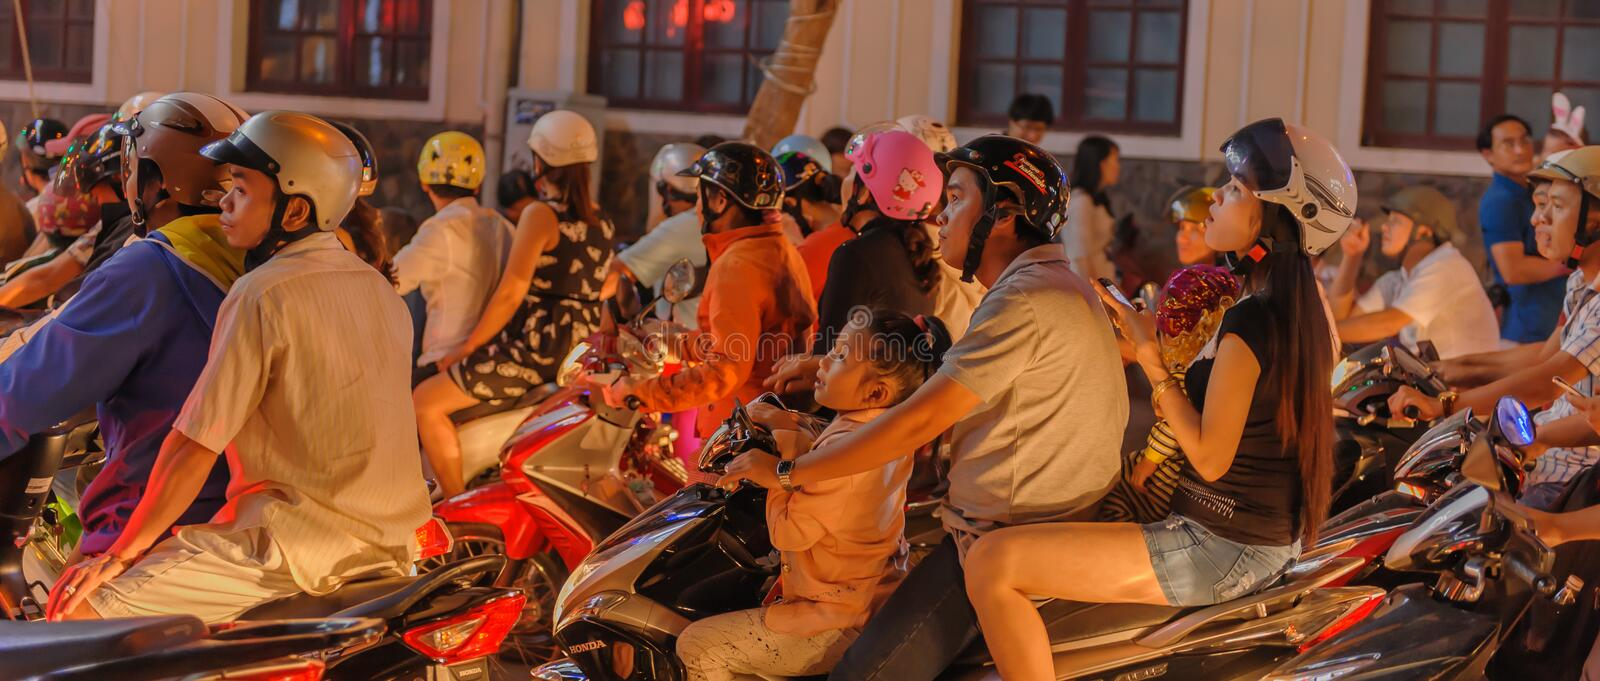 Vietnam - Ho Chi Minh City - Saigon. Hectic city traffic with local Vietnamese people on their motorbikes during the evening on the streets of Ho Chi Minh City royalty free stock photos